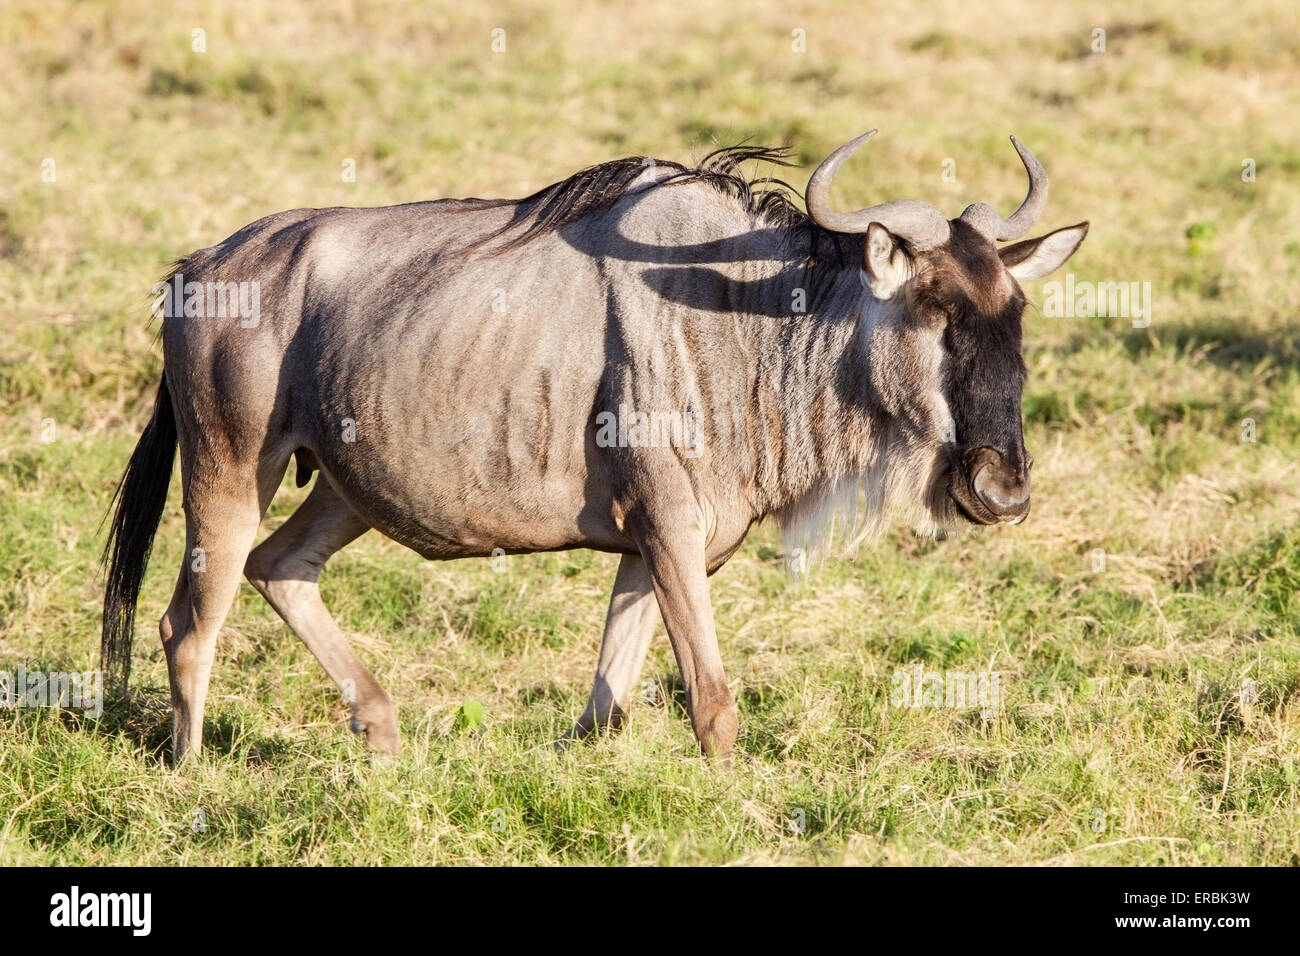 wildebeest, or gnu,  (Connochaetes taurinus) lone adult walking on plains, Masai Mara, Kenya, Africa - Stock Image